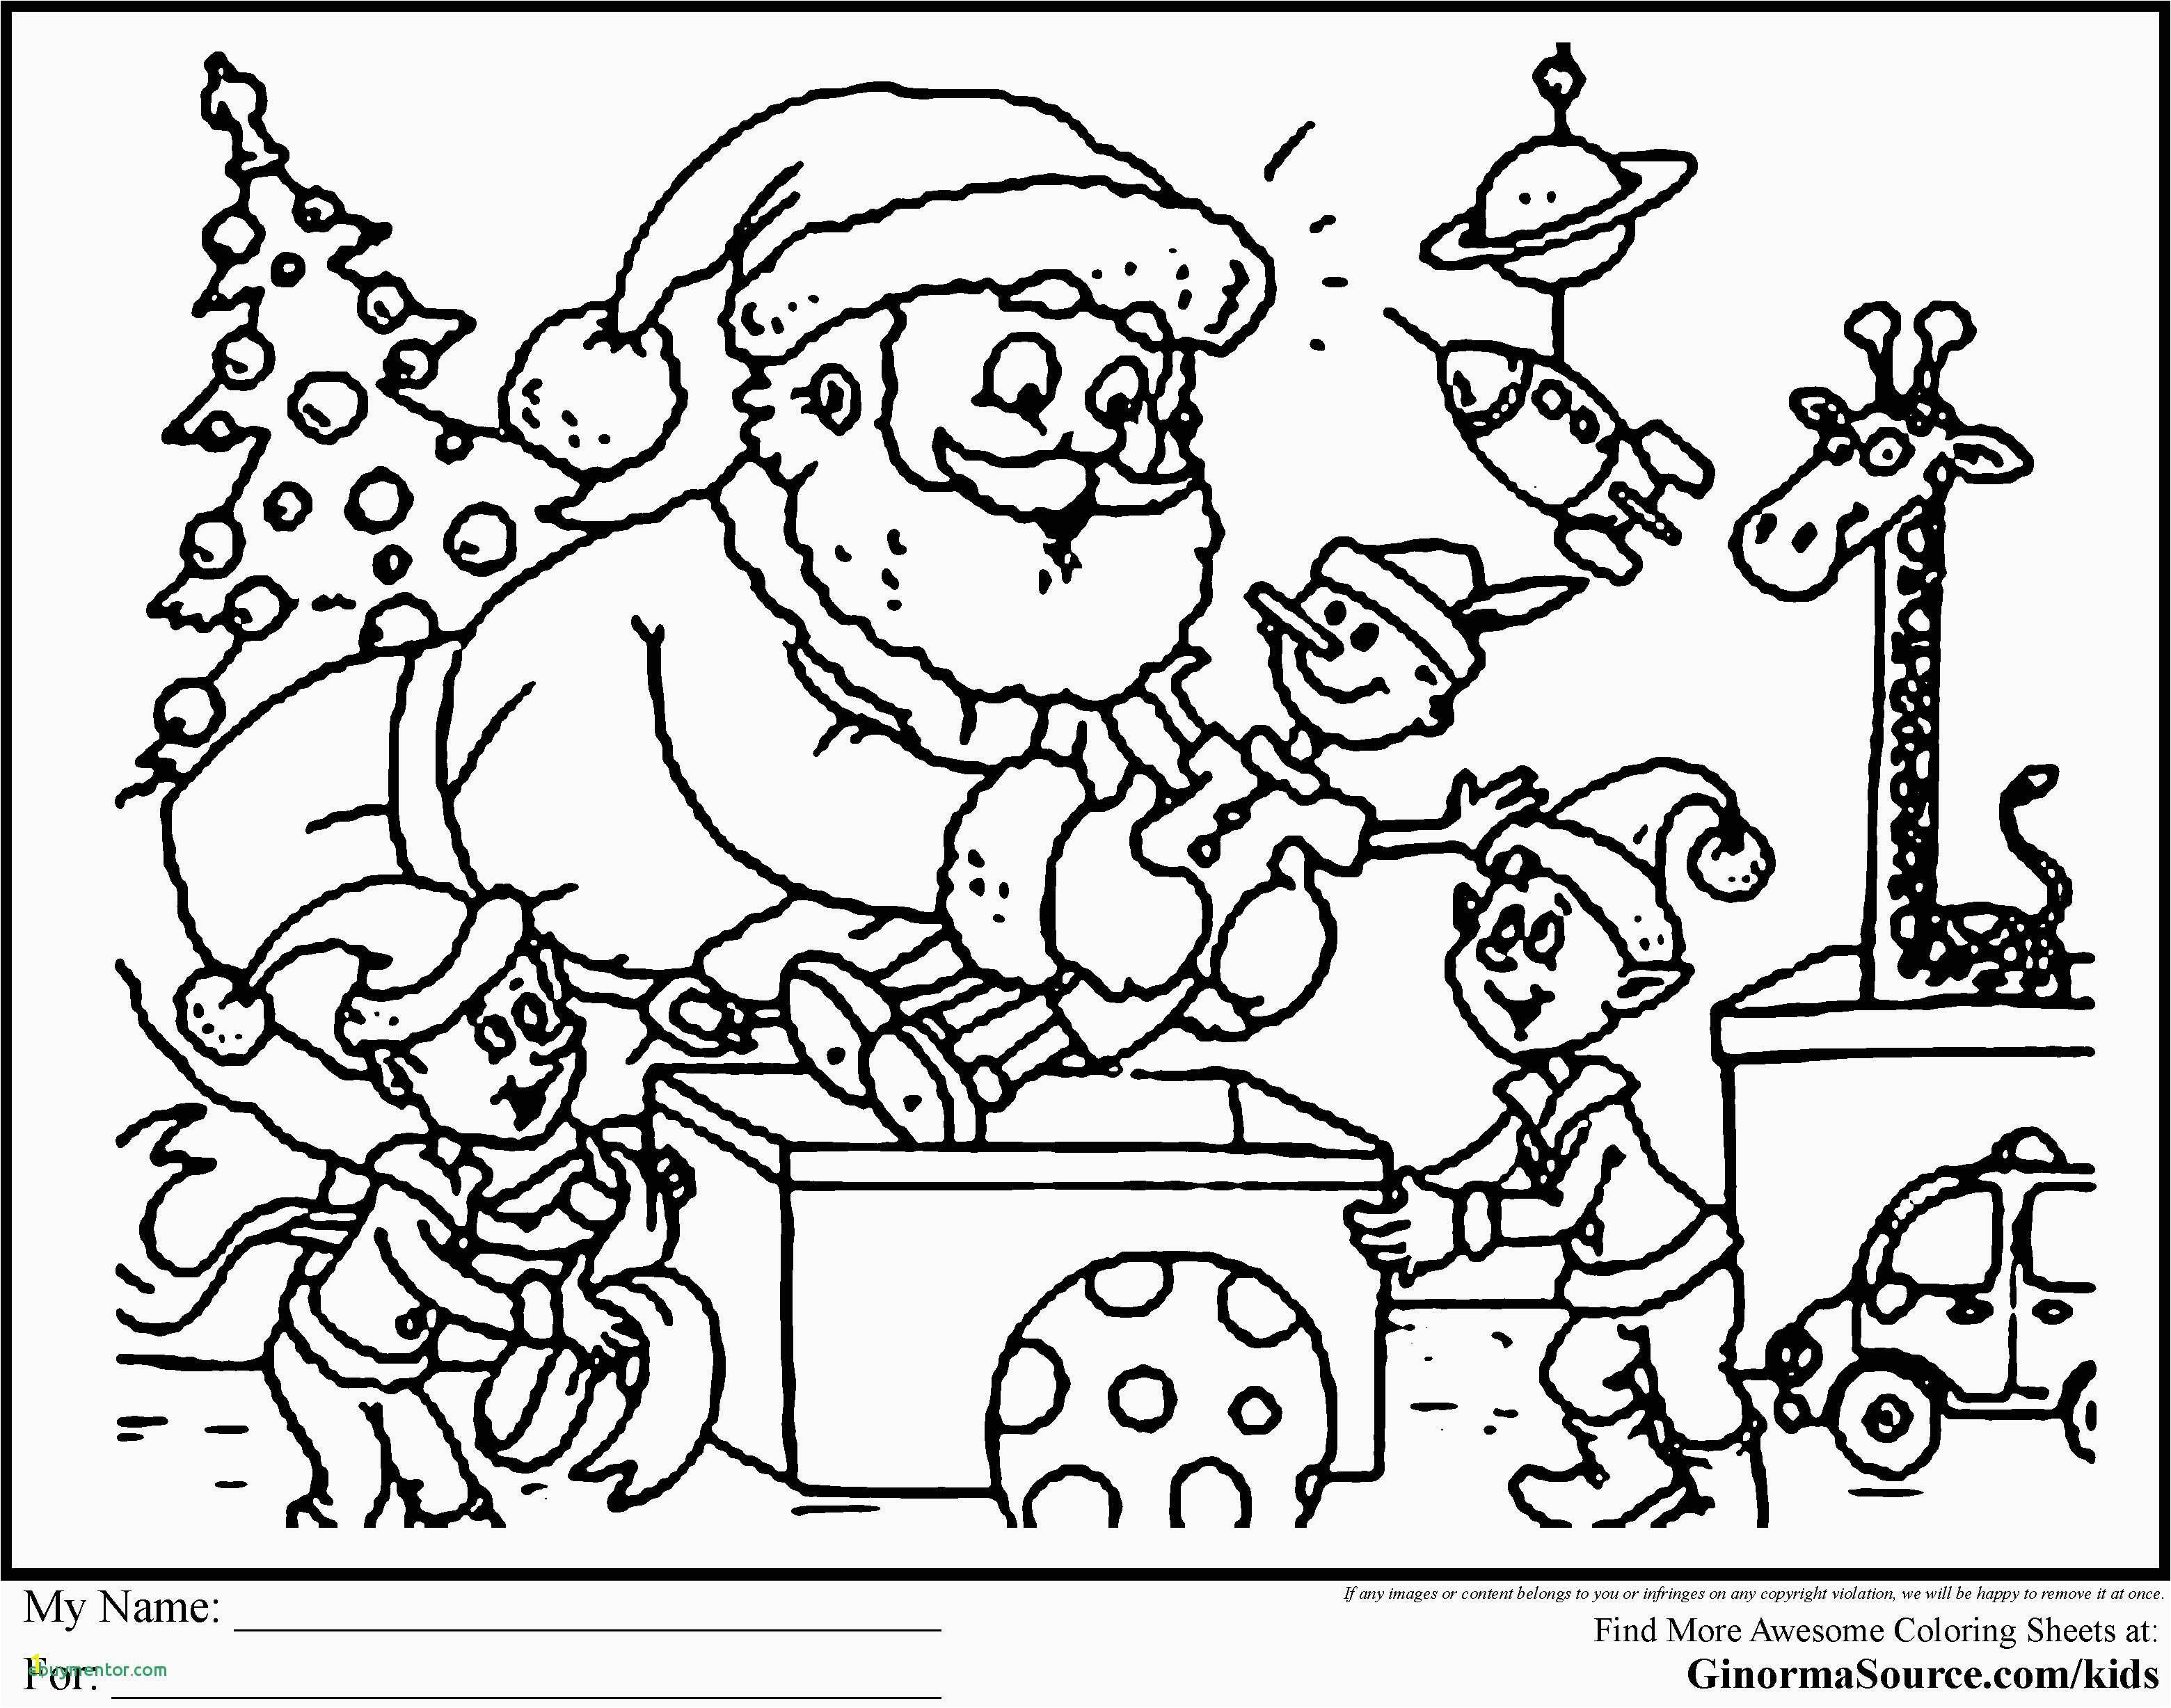 Nativity Coloring Pages for Kids Free Nativity Coloring Pages for Kids Christmas Coloring Pages